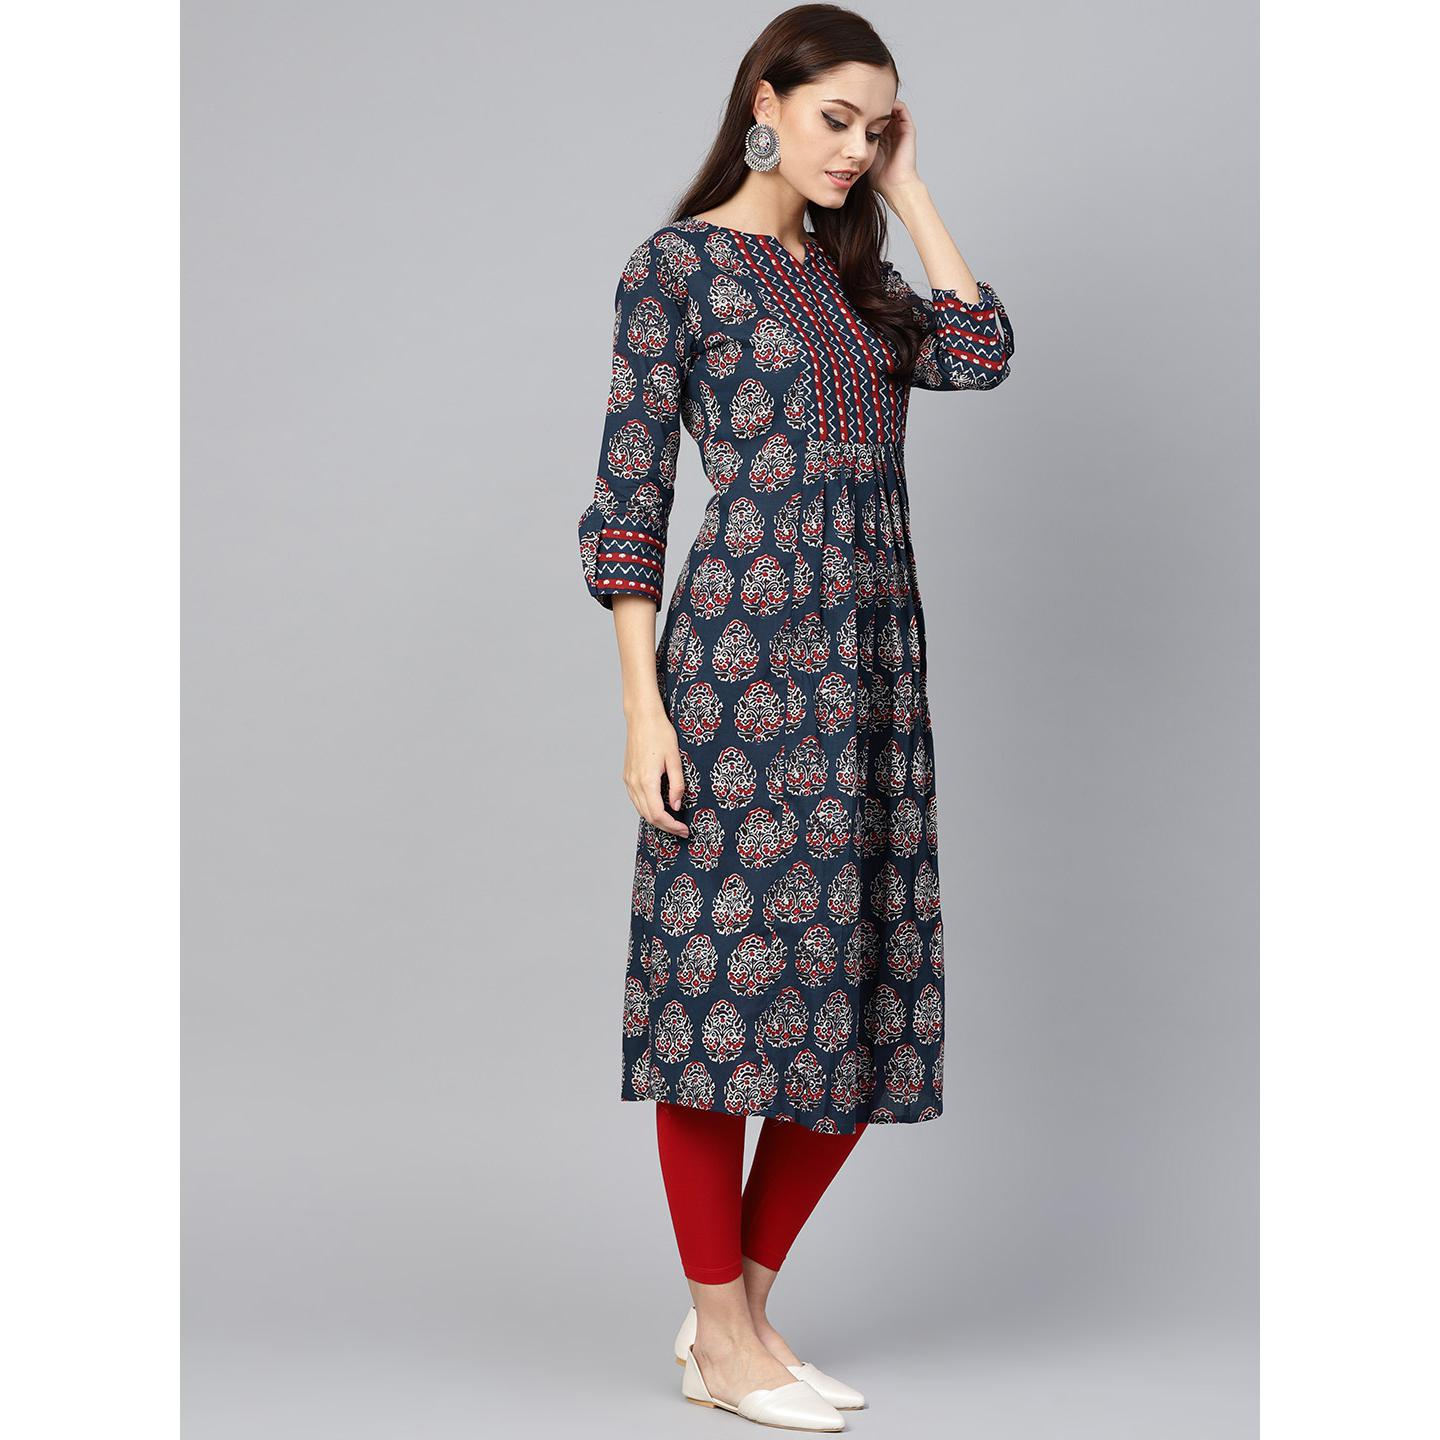 Indo Era - Navy Blue Printed Anarkali Kurtas